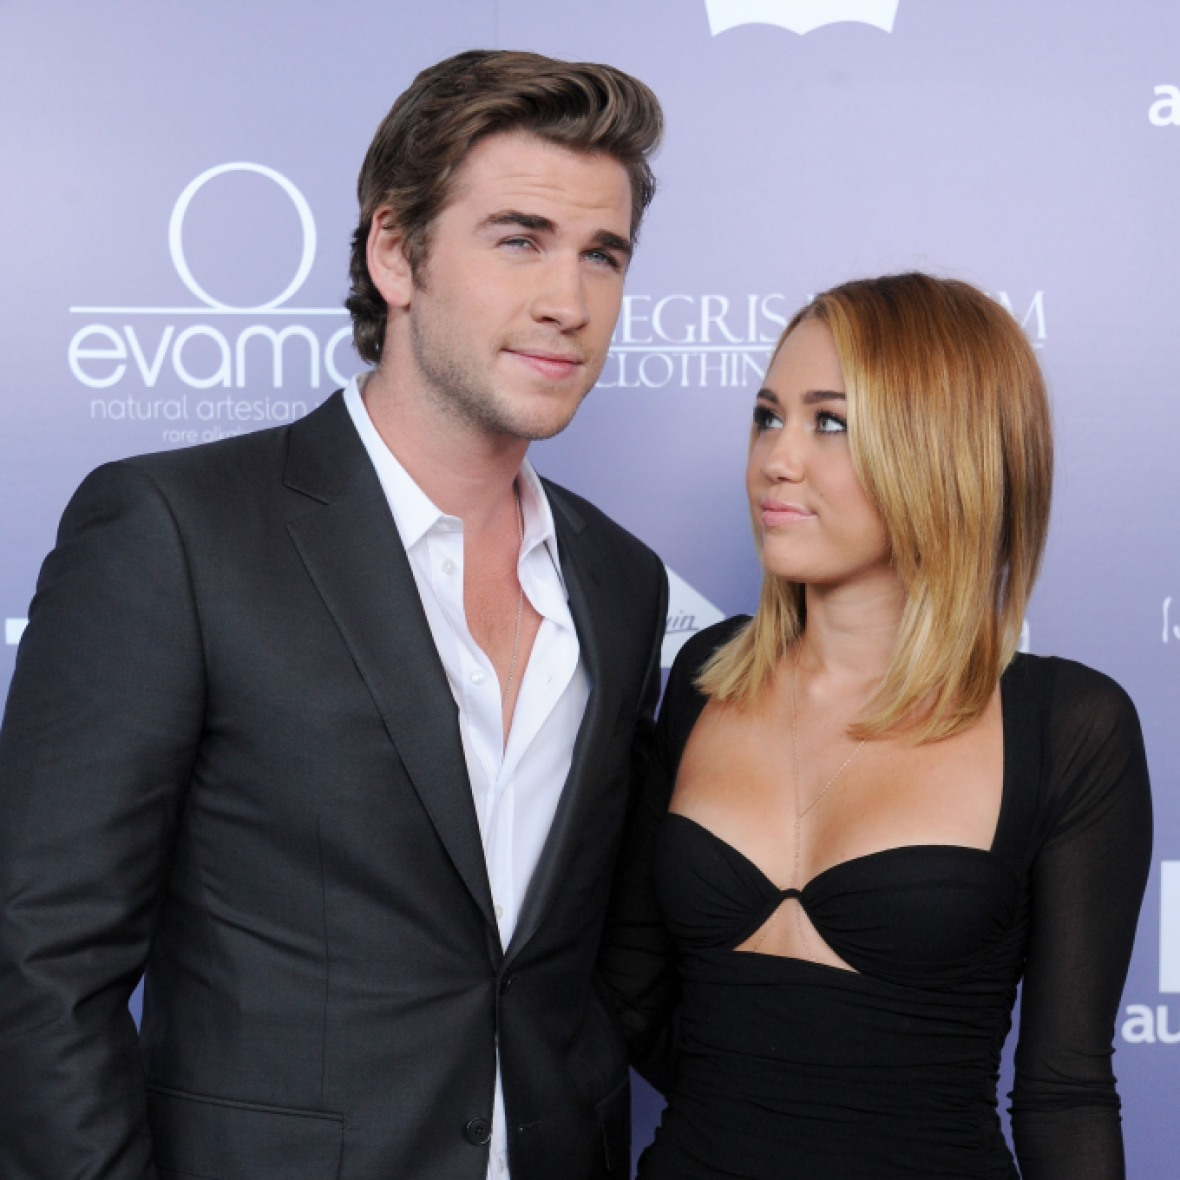 miley and liam getty images